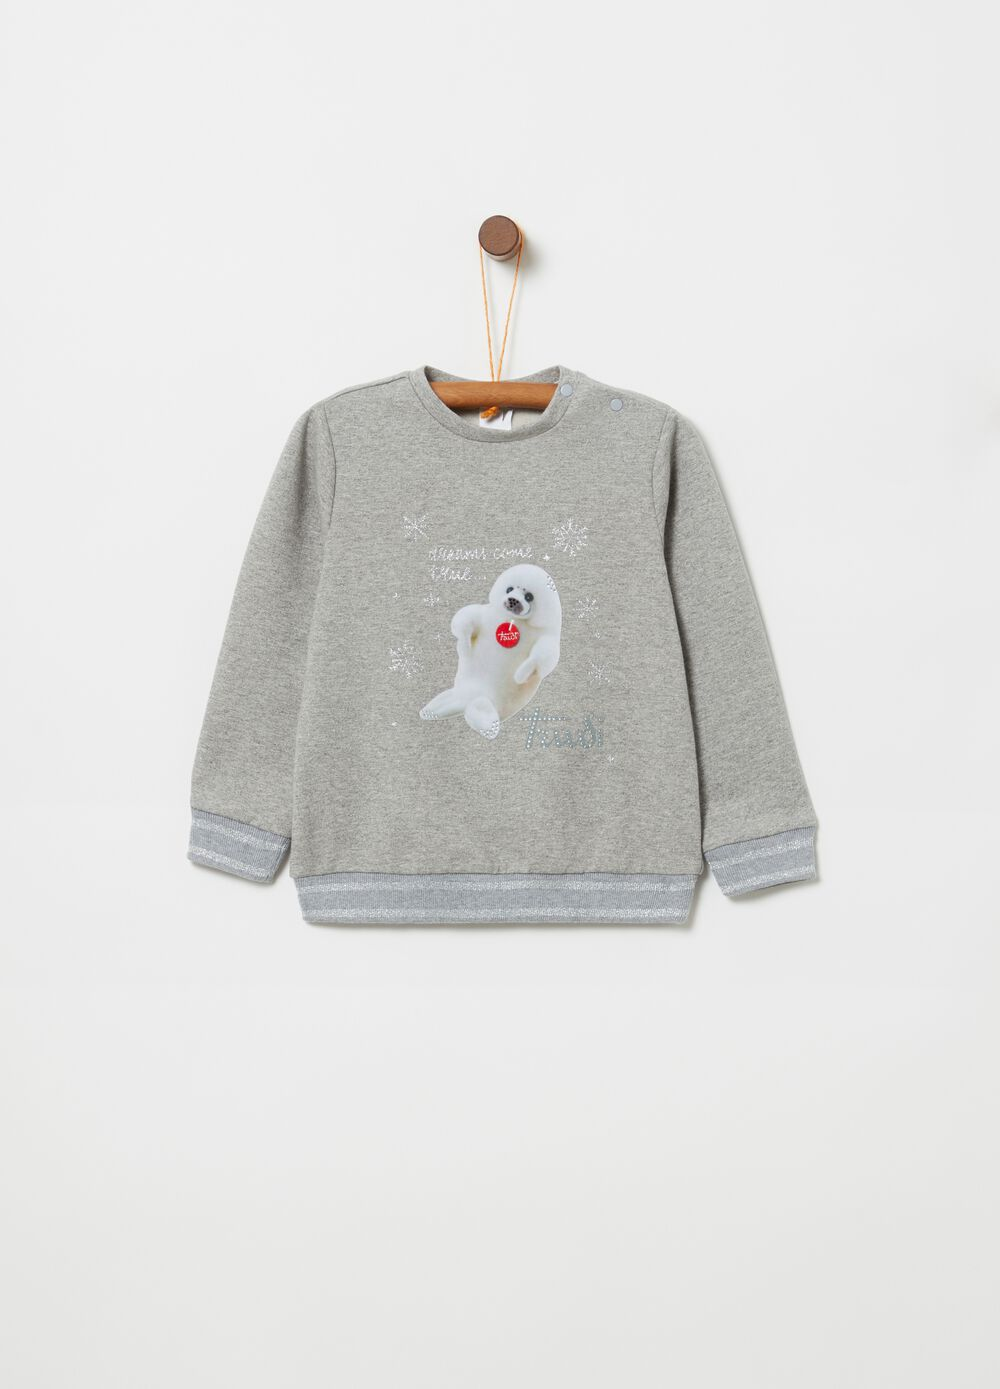 Sweatshirt with glitter Trudi print and diamantés